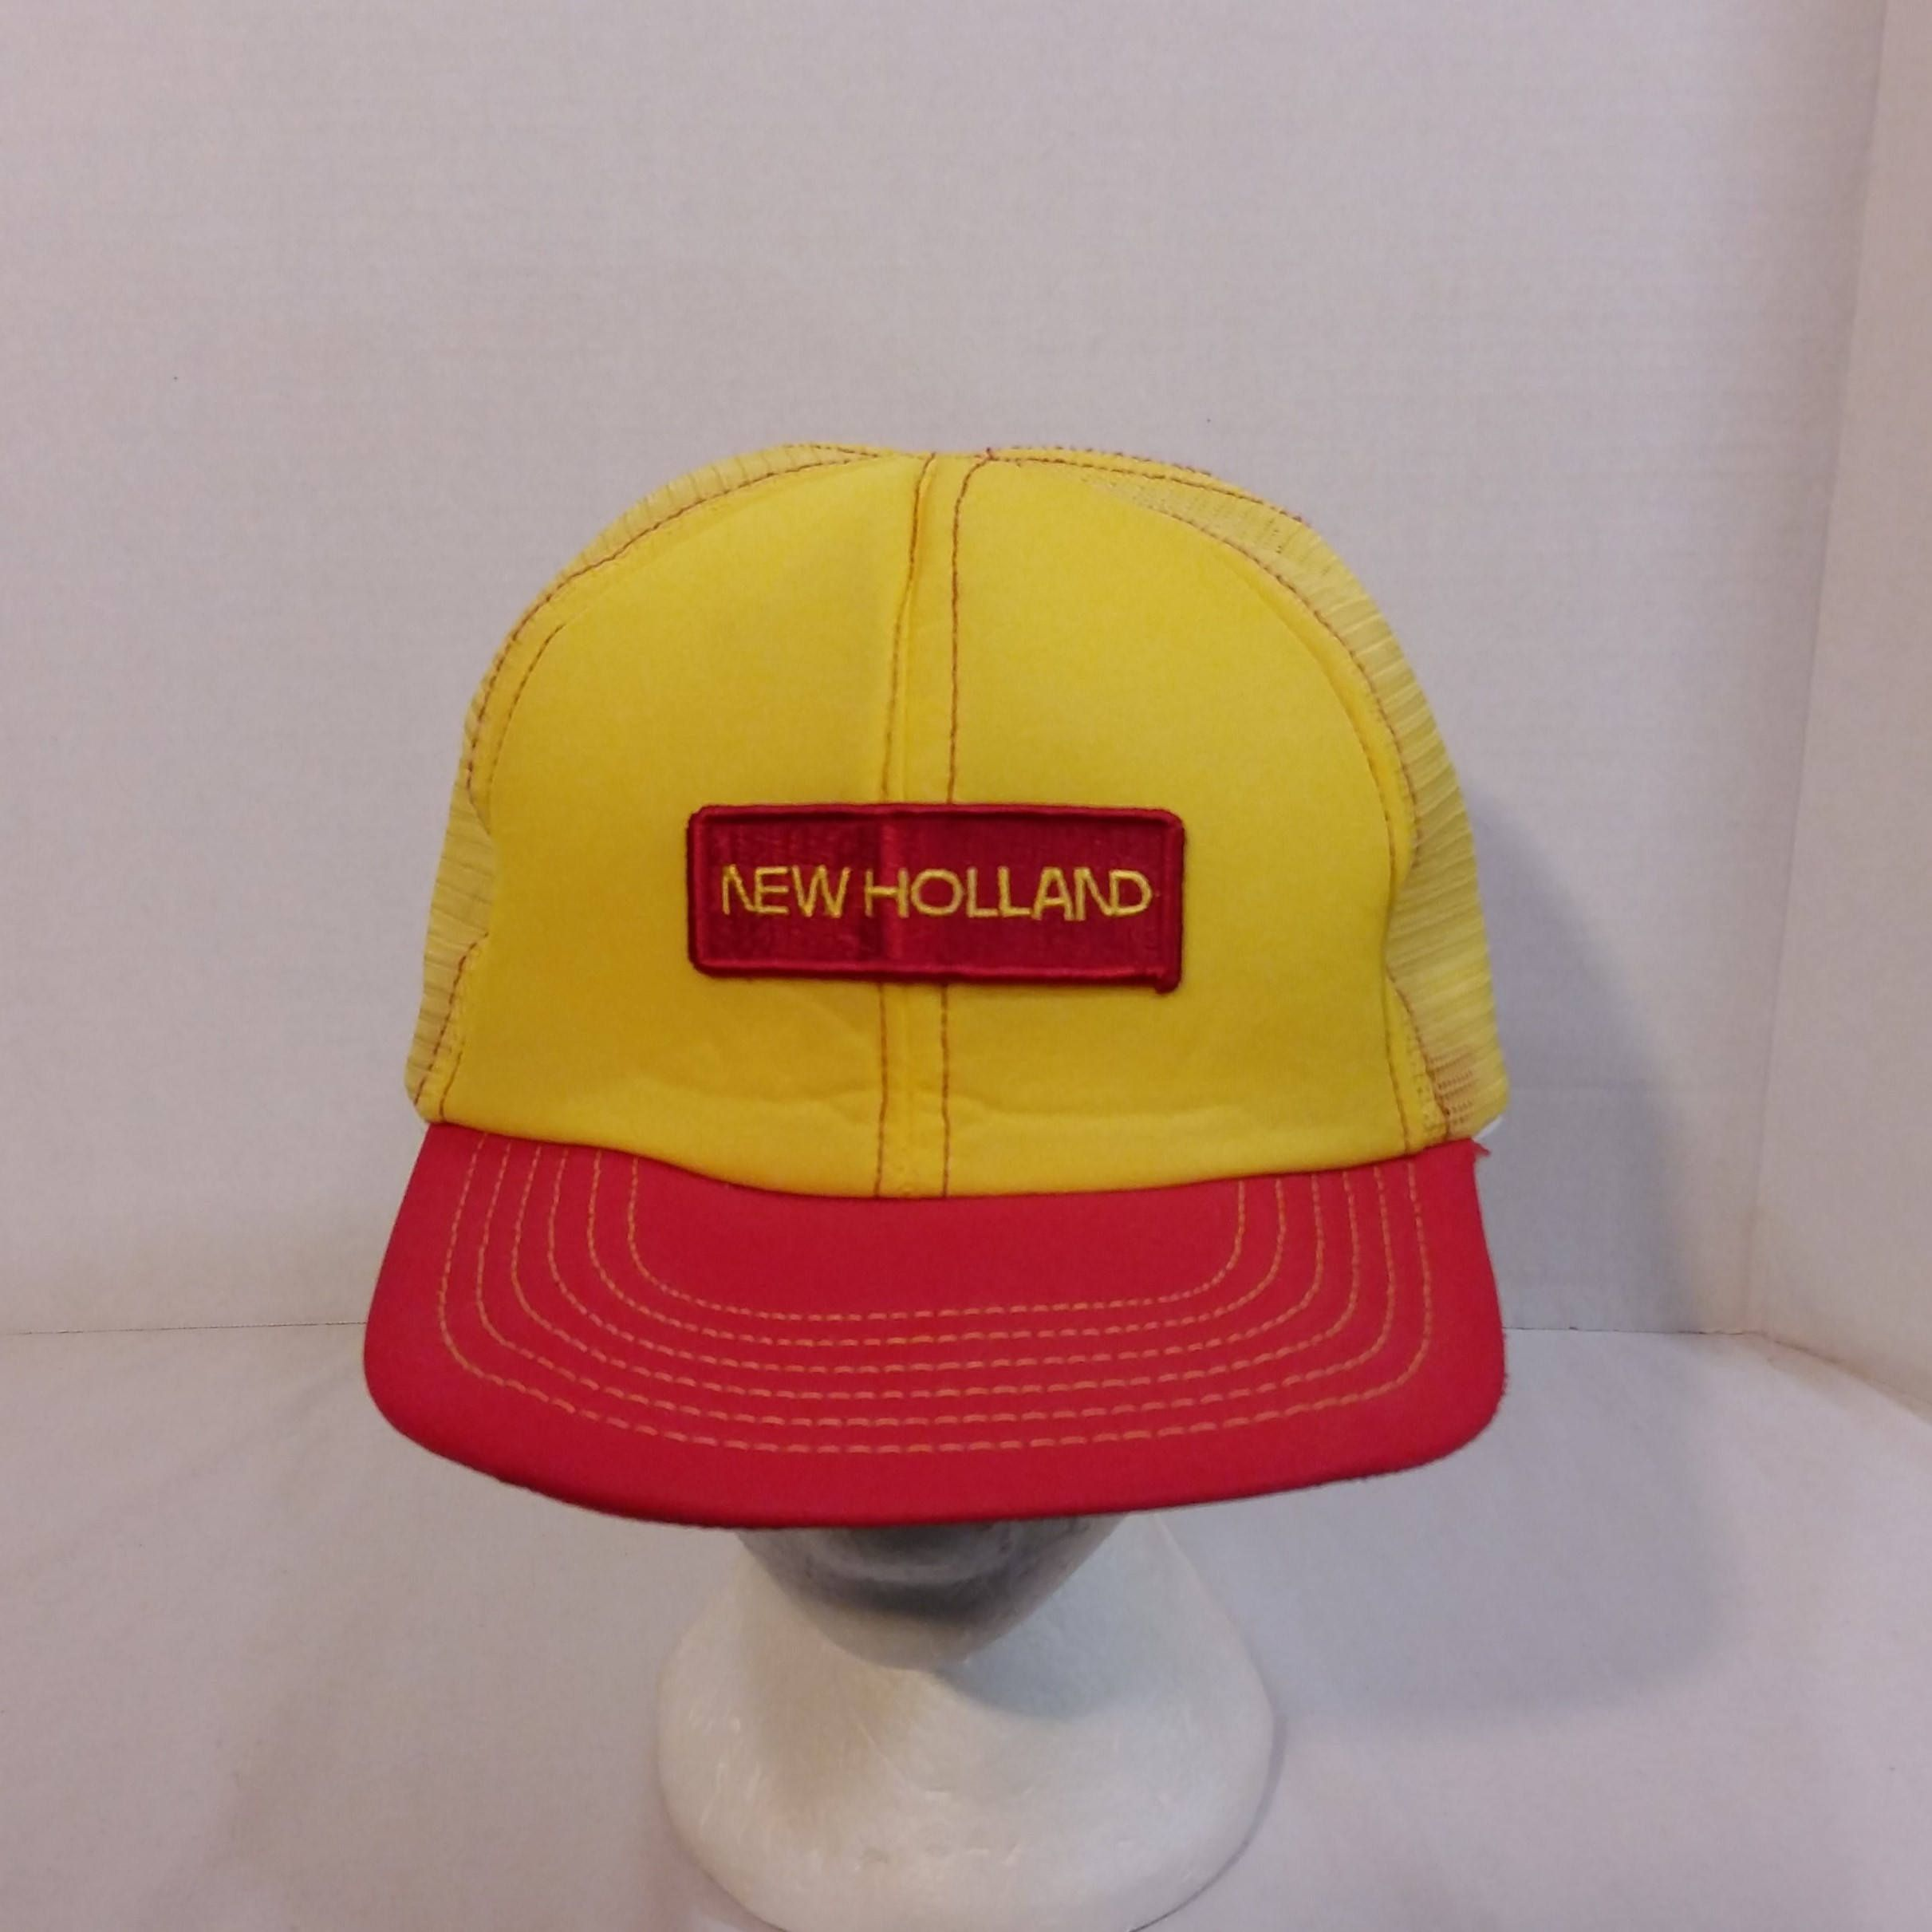 884f385369147 New Holland Vintage Baseball Truckers Hat Cap Made In Canada by  LouisandRileys on Etsy